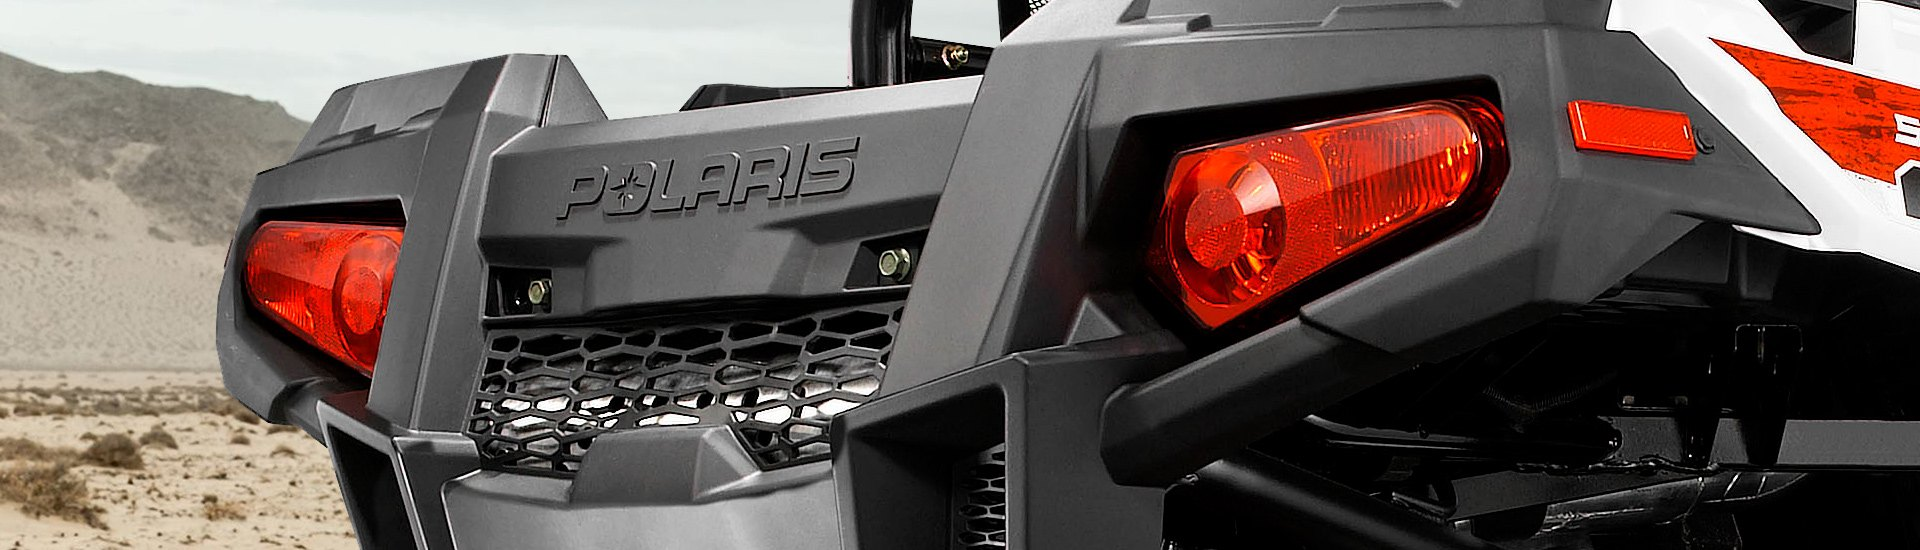 Polaris Powersports Tail Lights | LED, Smoked